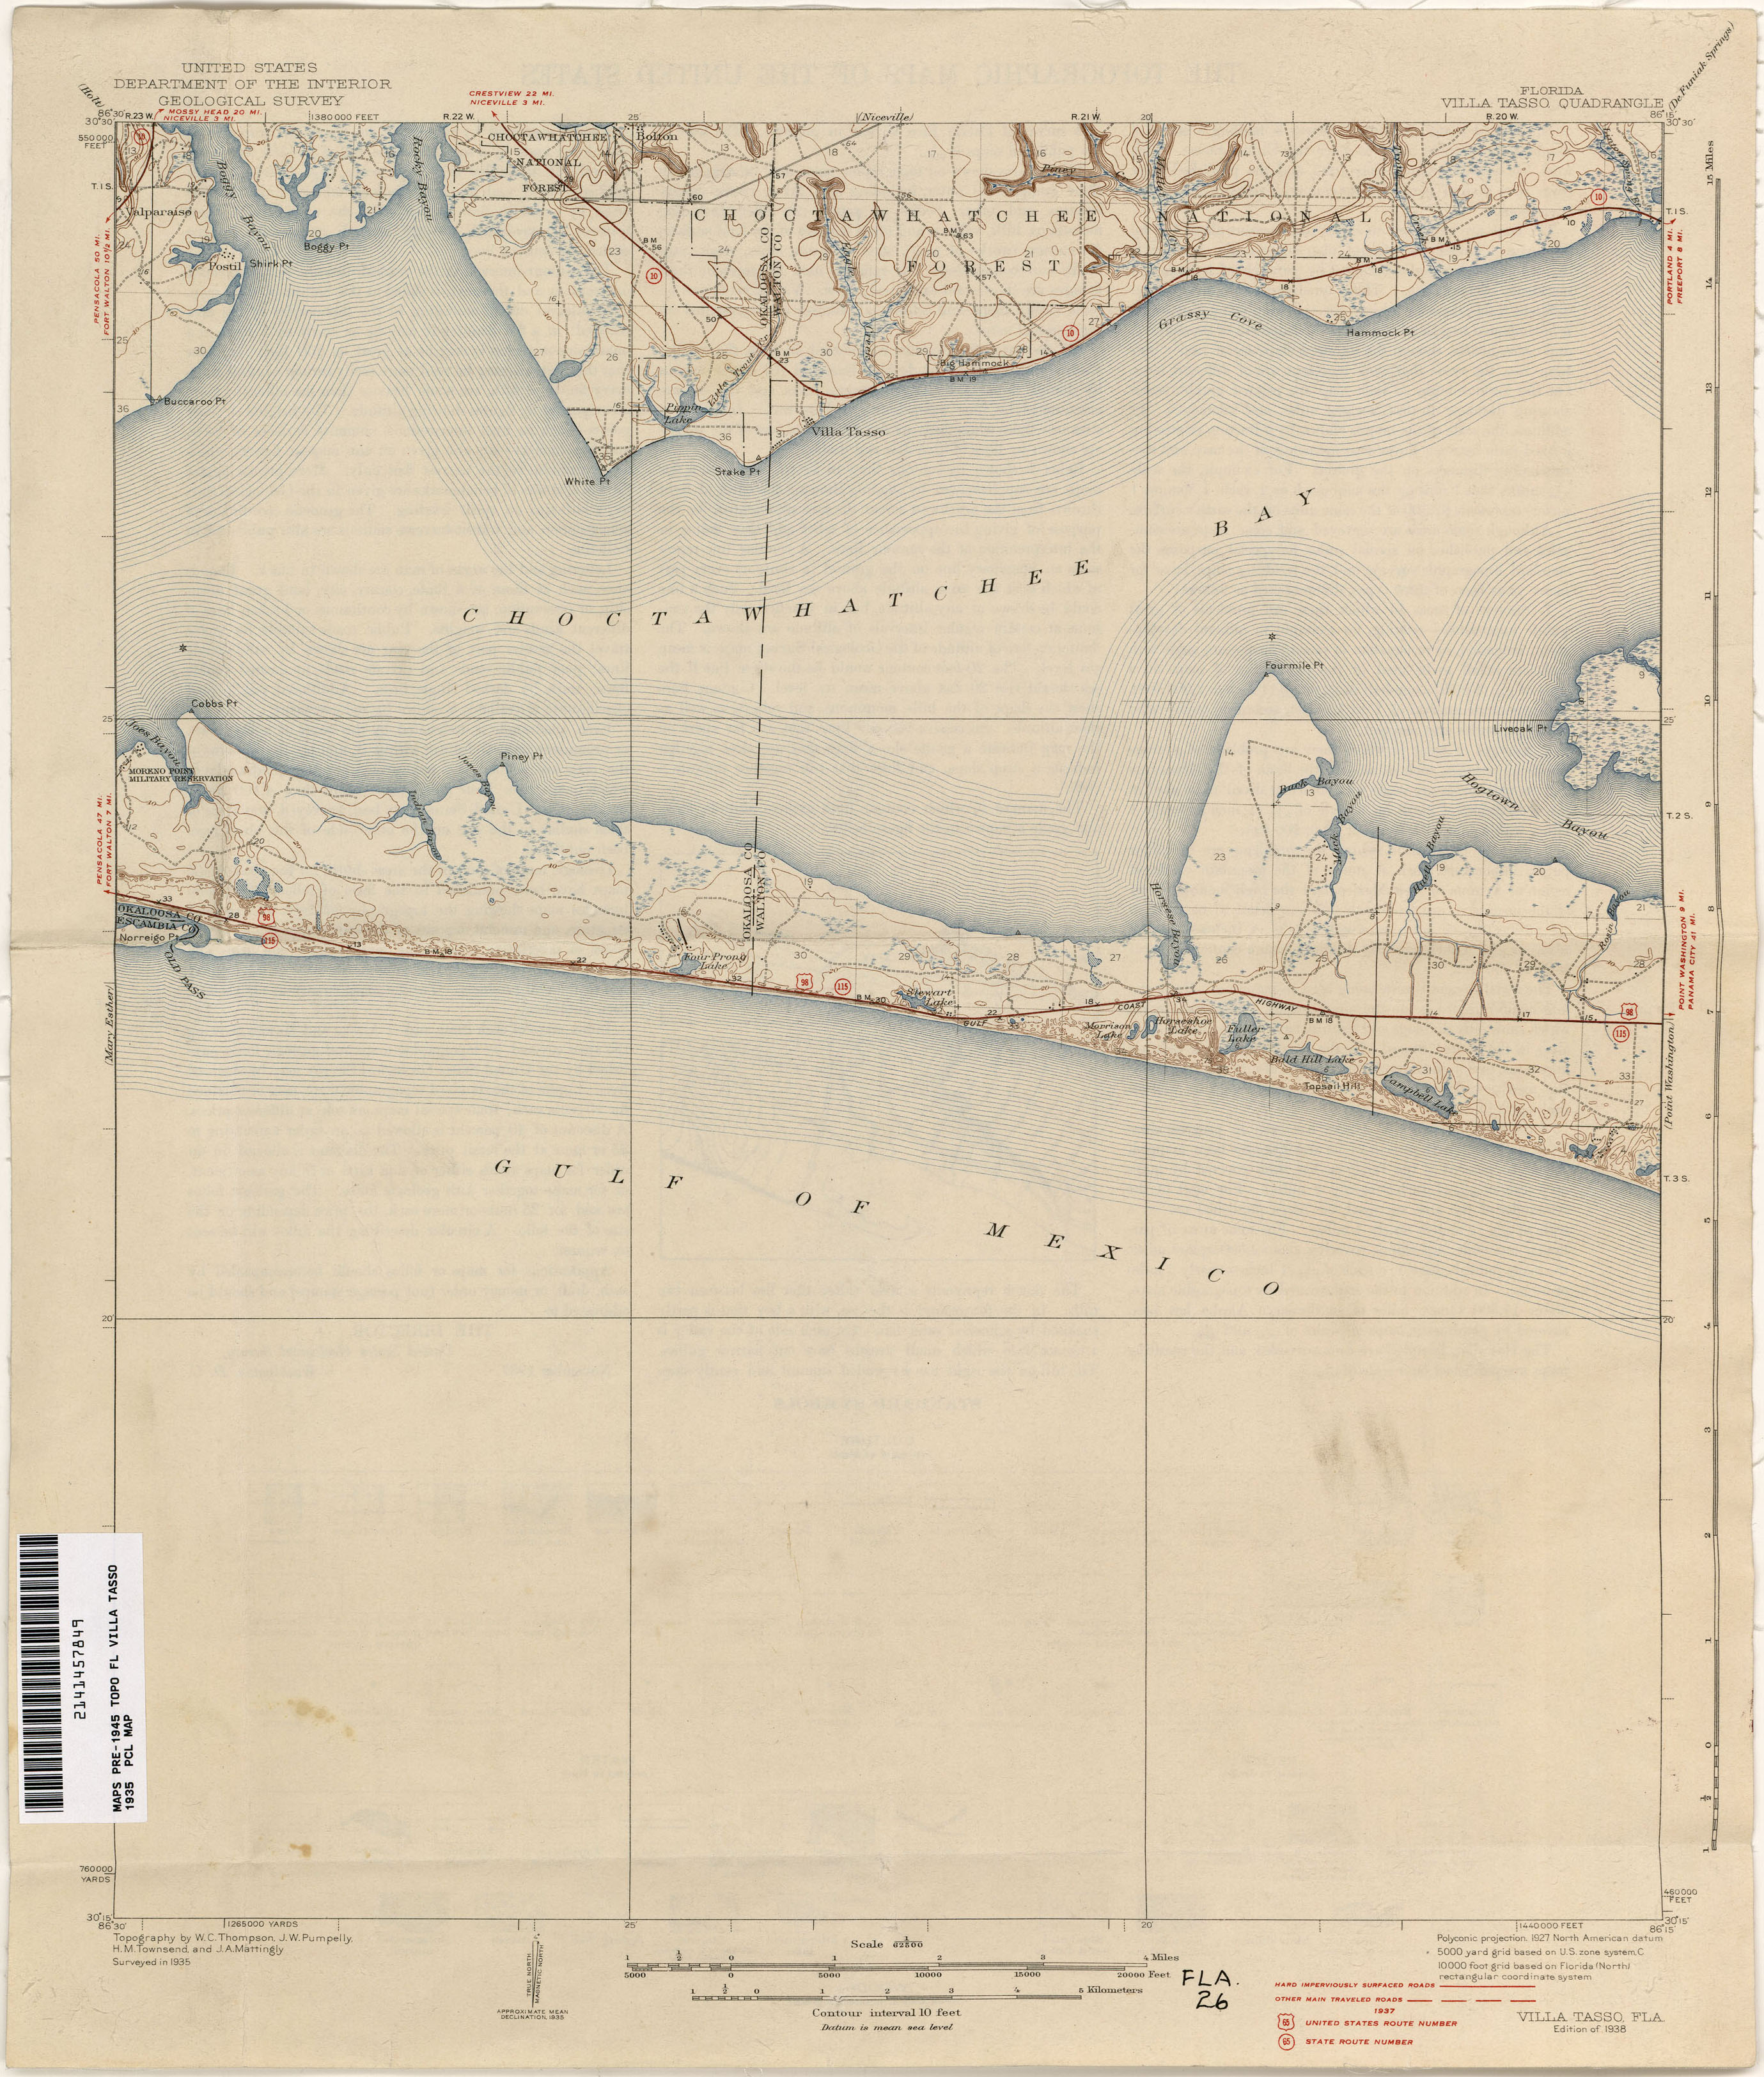 Holt Florida Map.Florida Historical Topographic Maps Perry Castaneda Map Collection